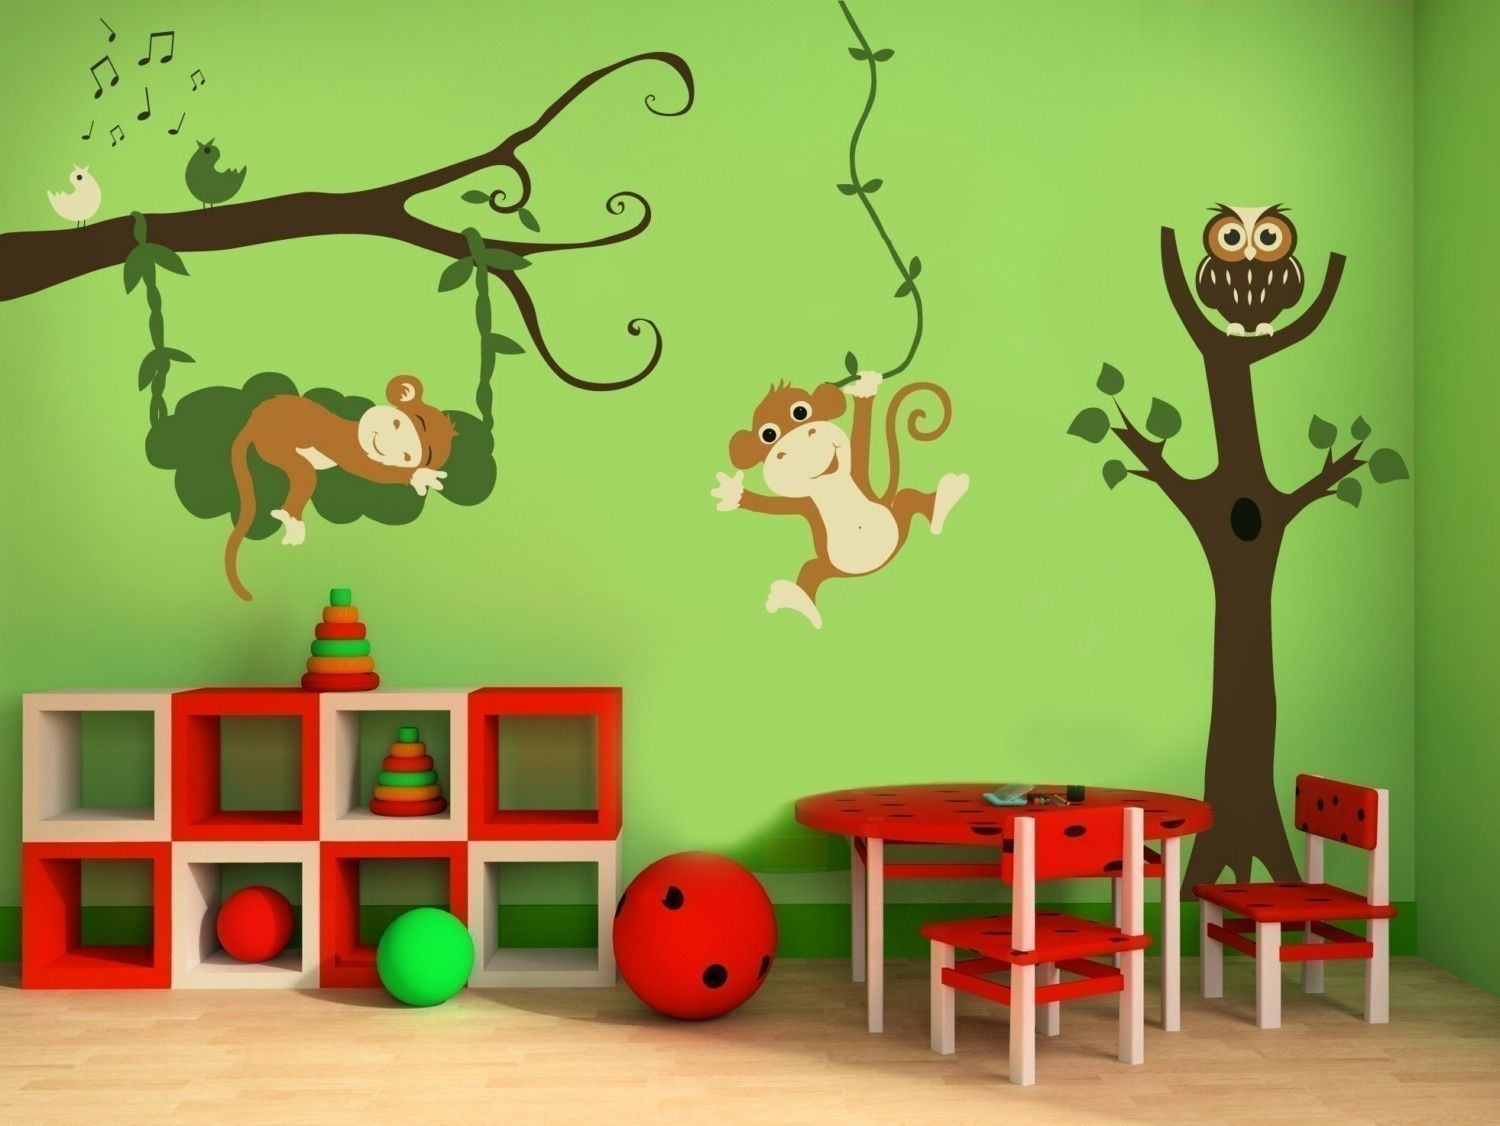 Nursery Themes | Decorating Ideas For A Church Nursery1